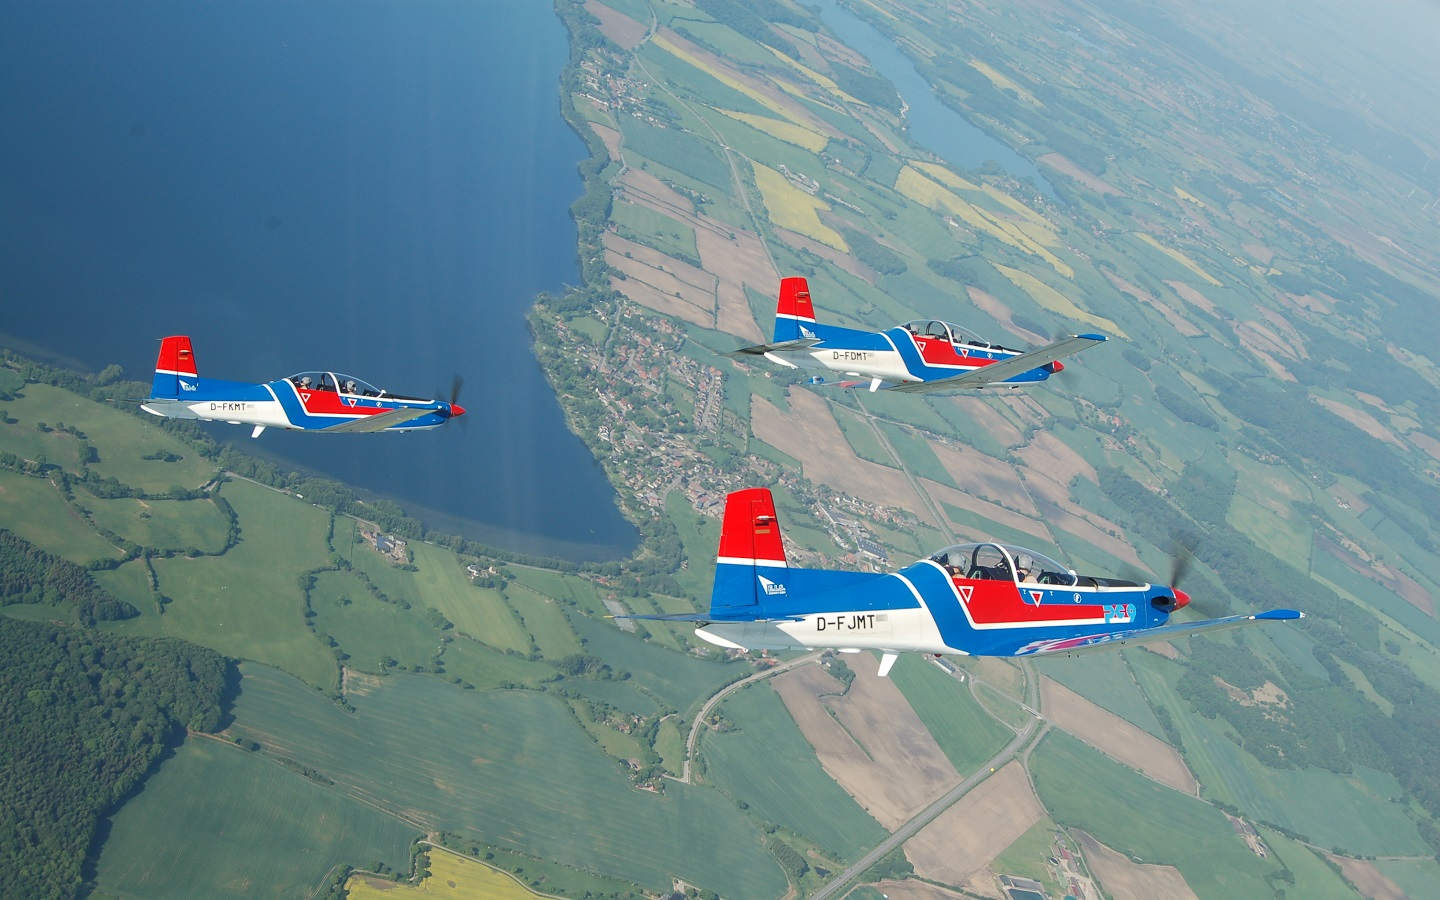 Three PC-9 aircraft